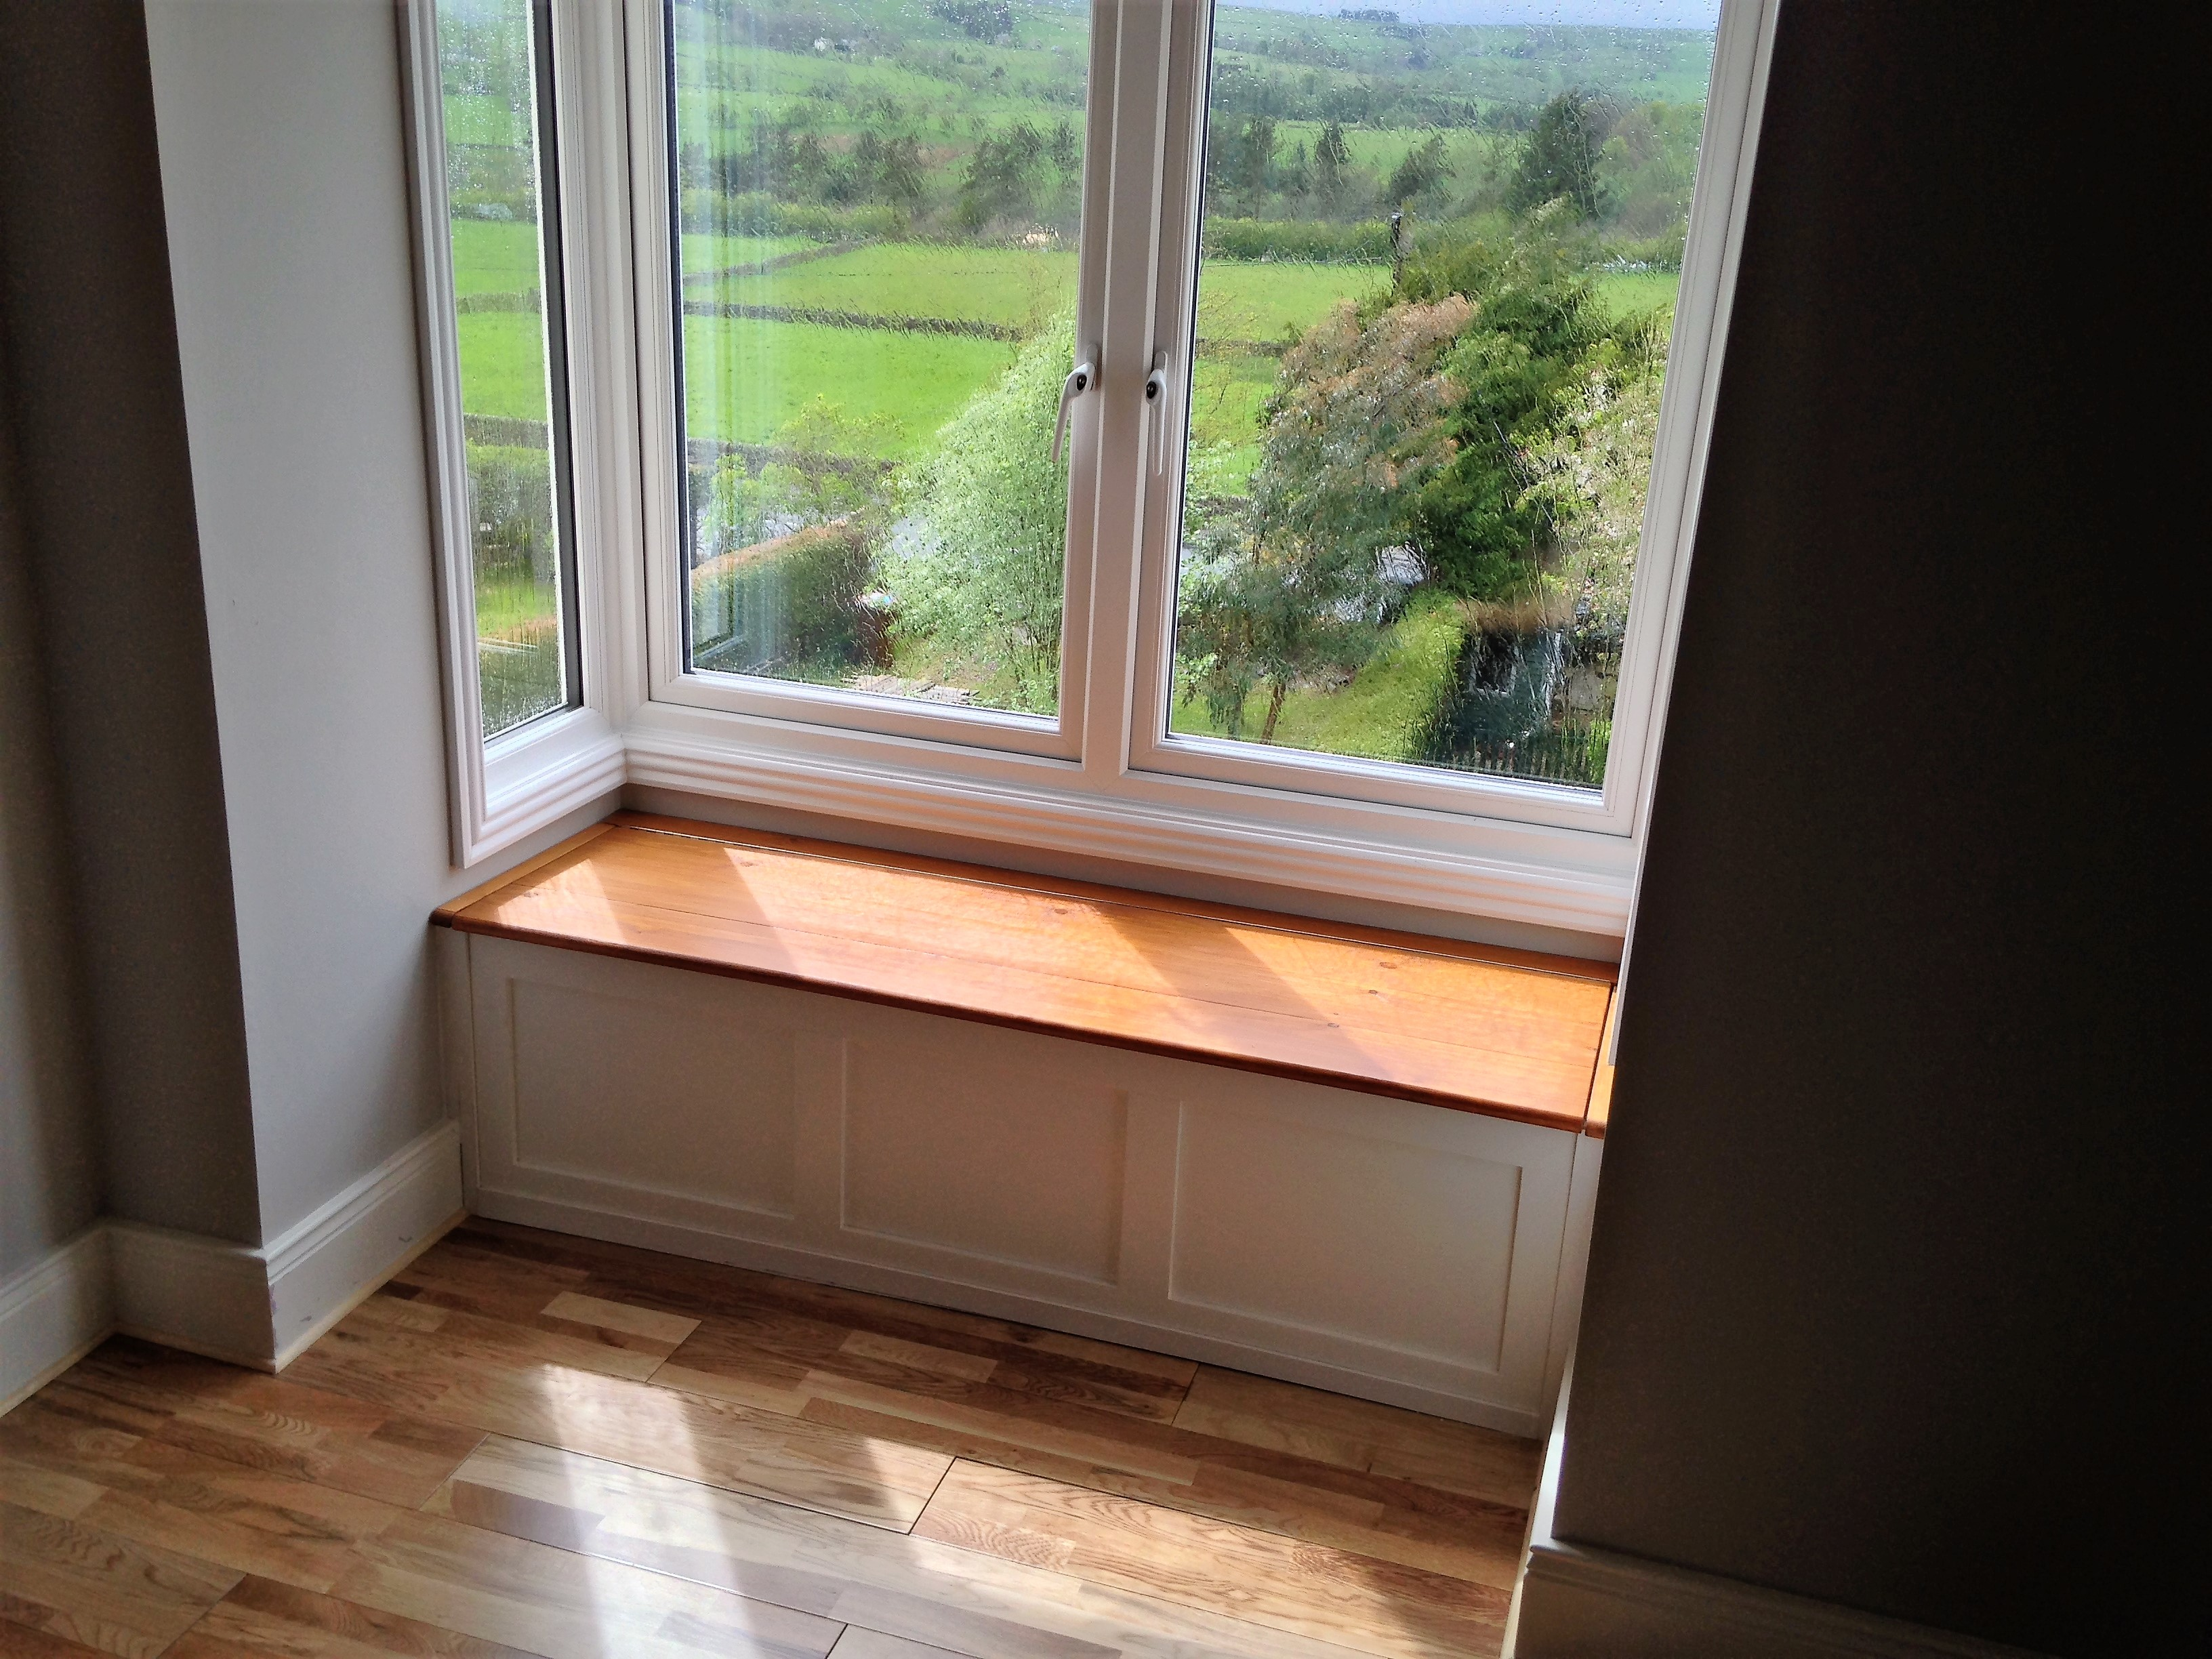 A beautiful bay window seat to complete the picturesque view.